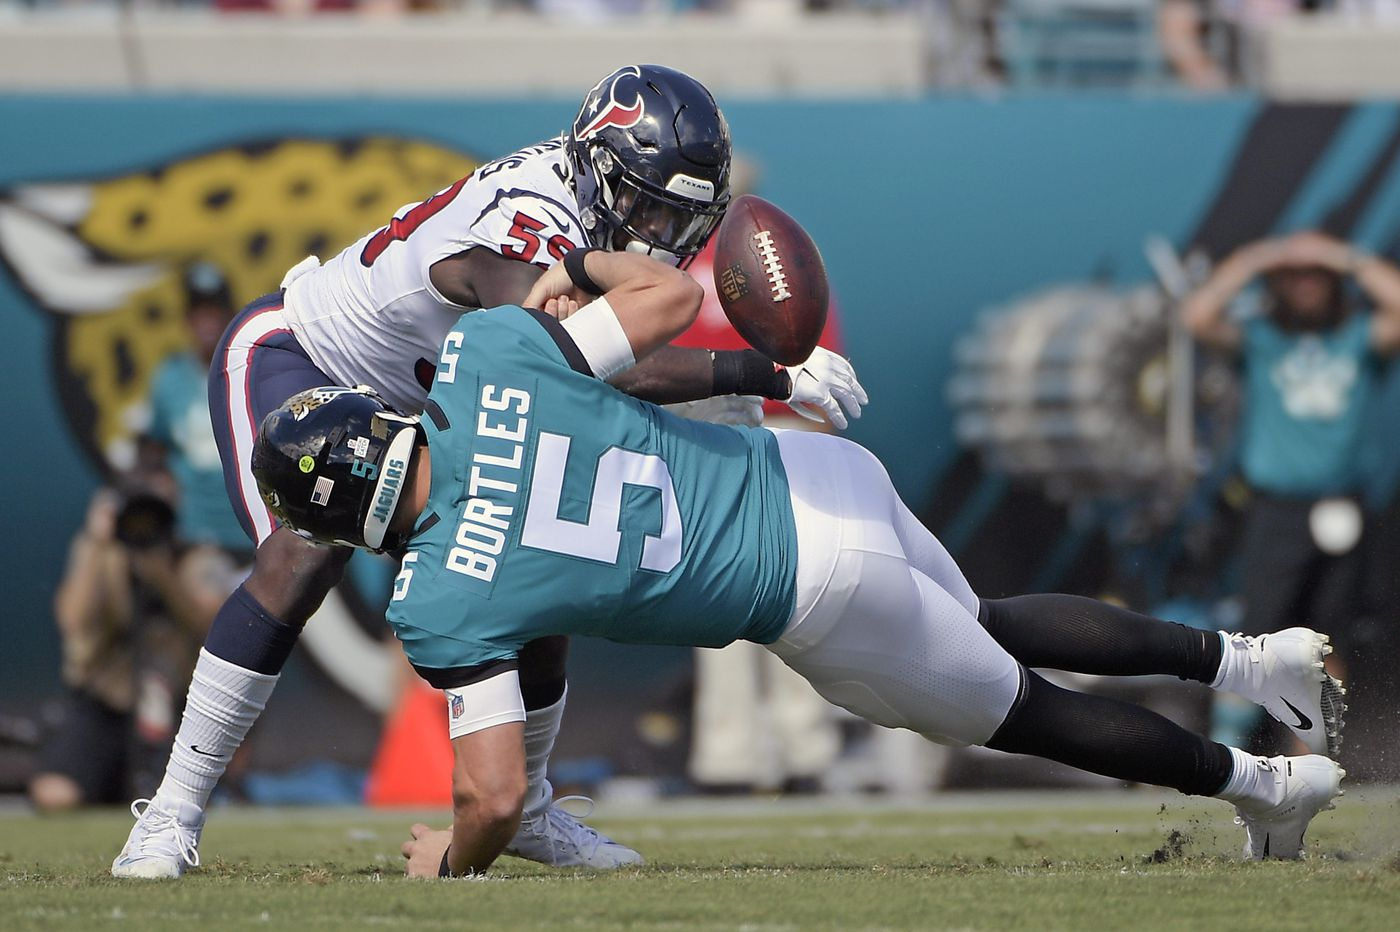 NFL Week 7 in review: Jaguars are in worse shape than the Eagles heading into matchup in London